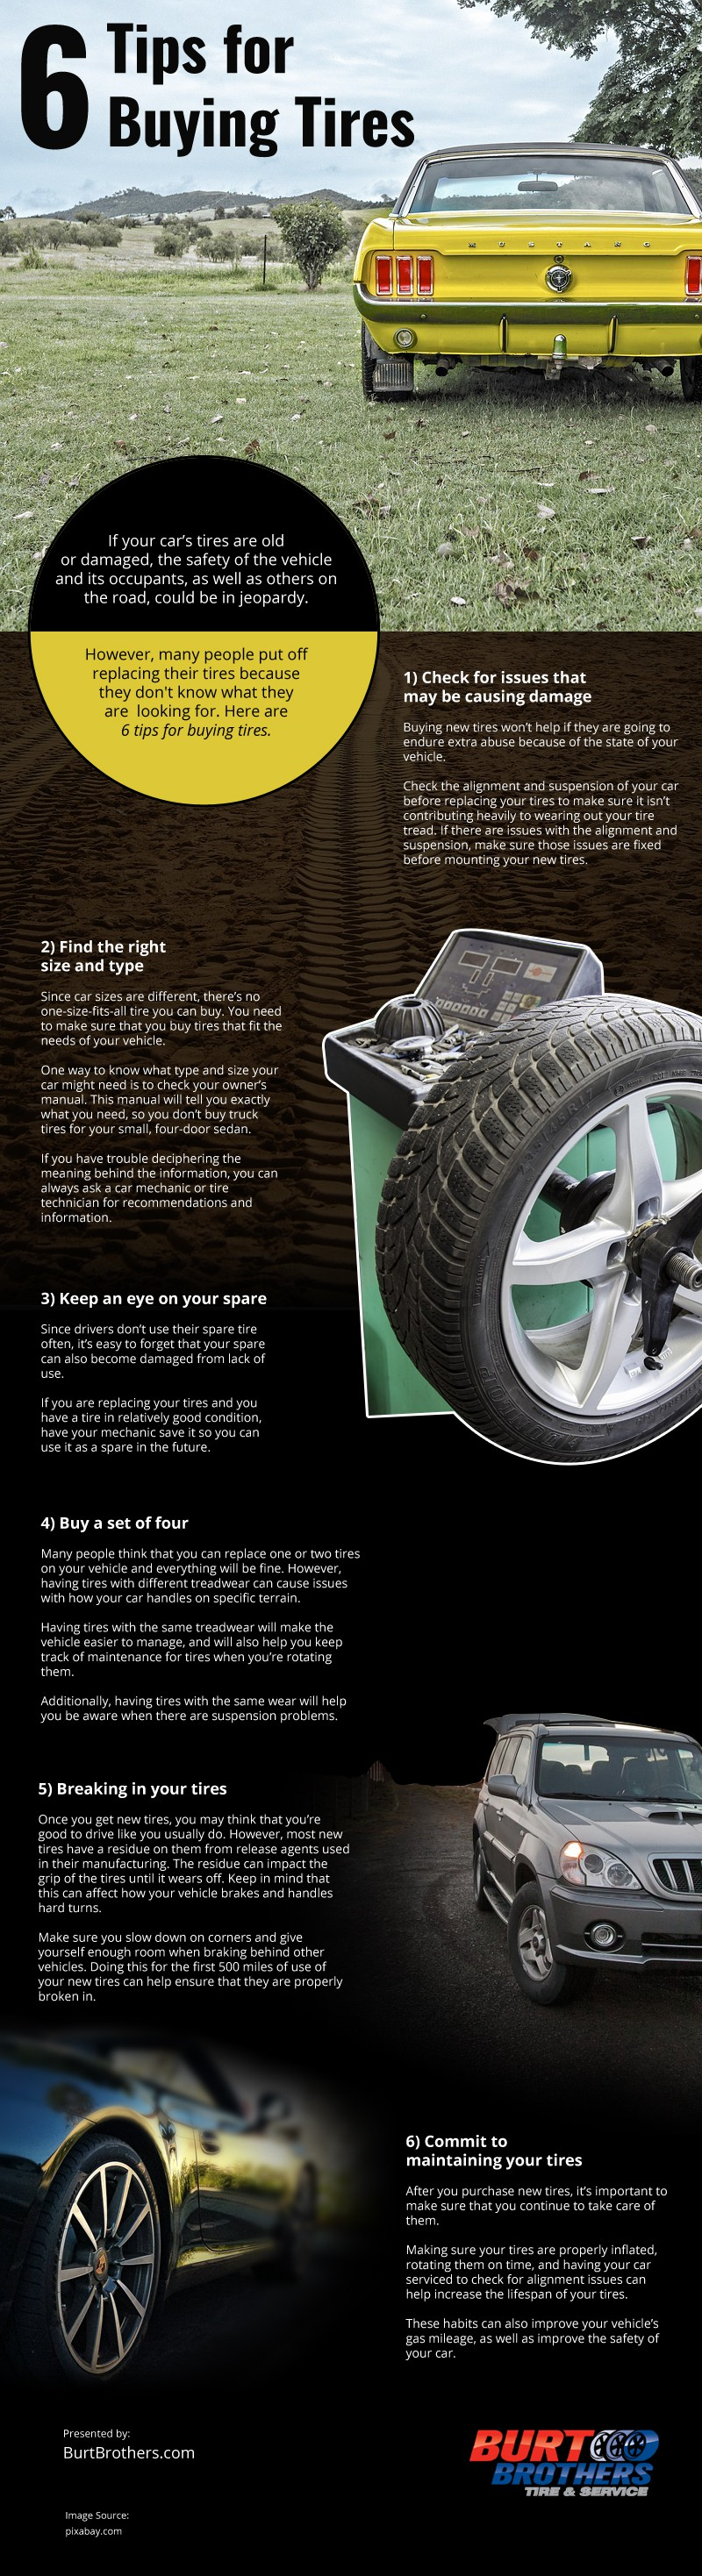 6 Tips for Buying Tires Infographic